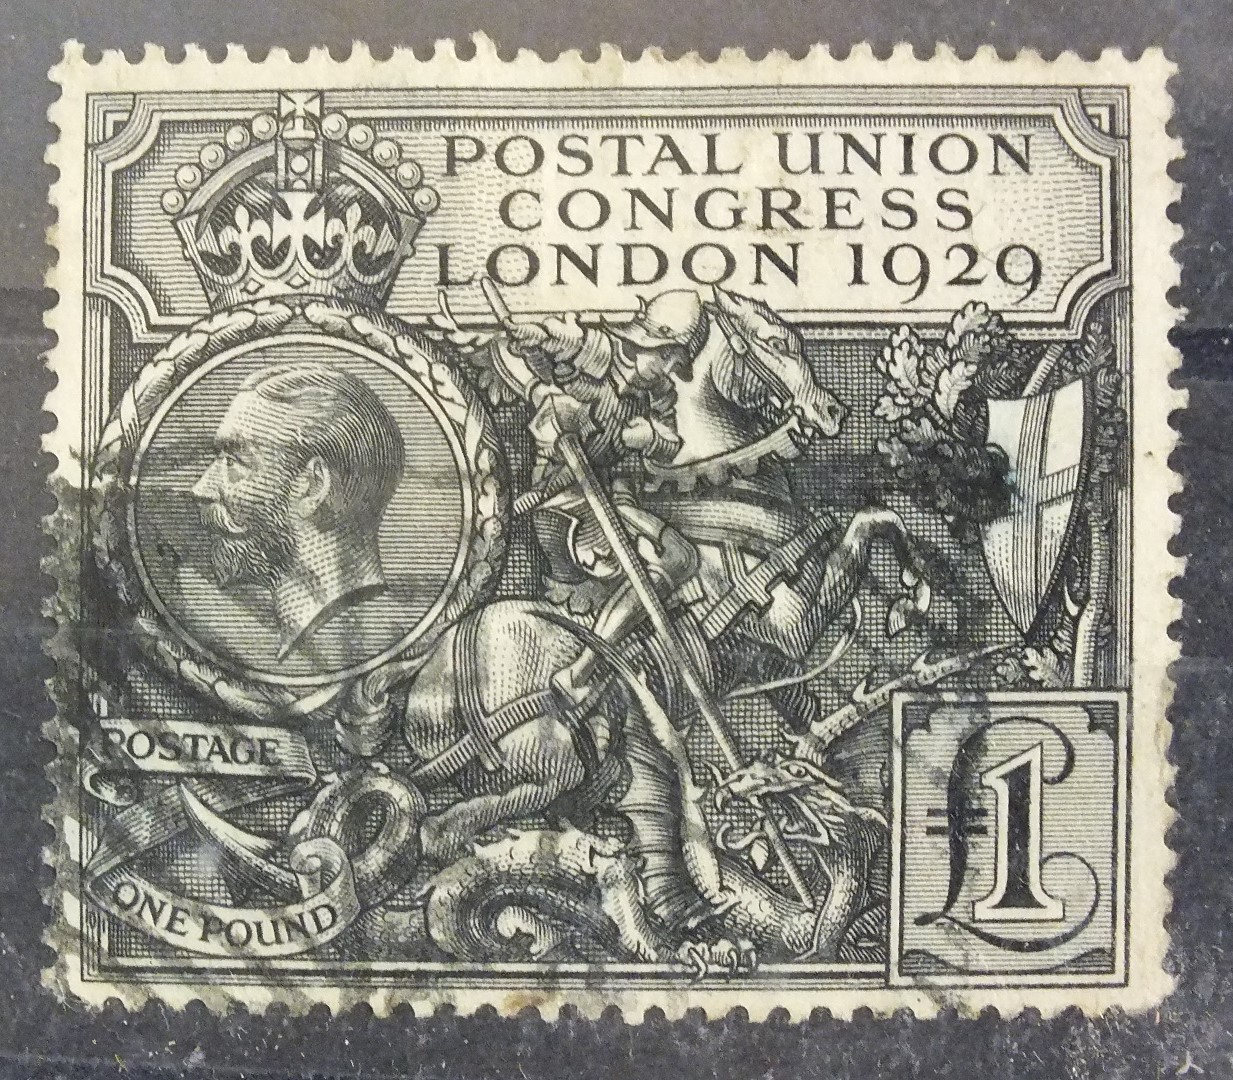 Lot 74 - Great Britain 1929 PUC £1, (good used copy).